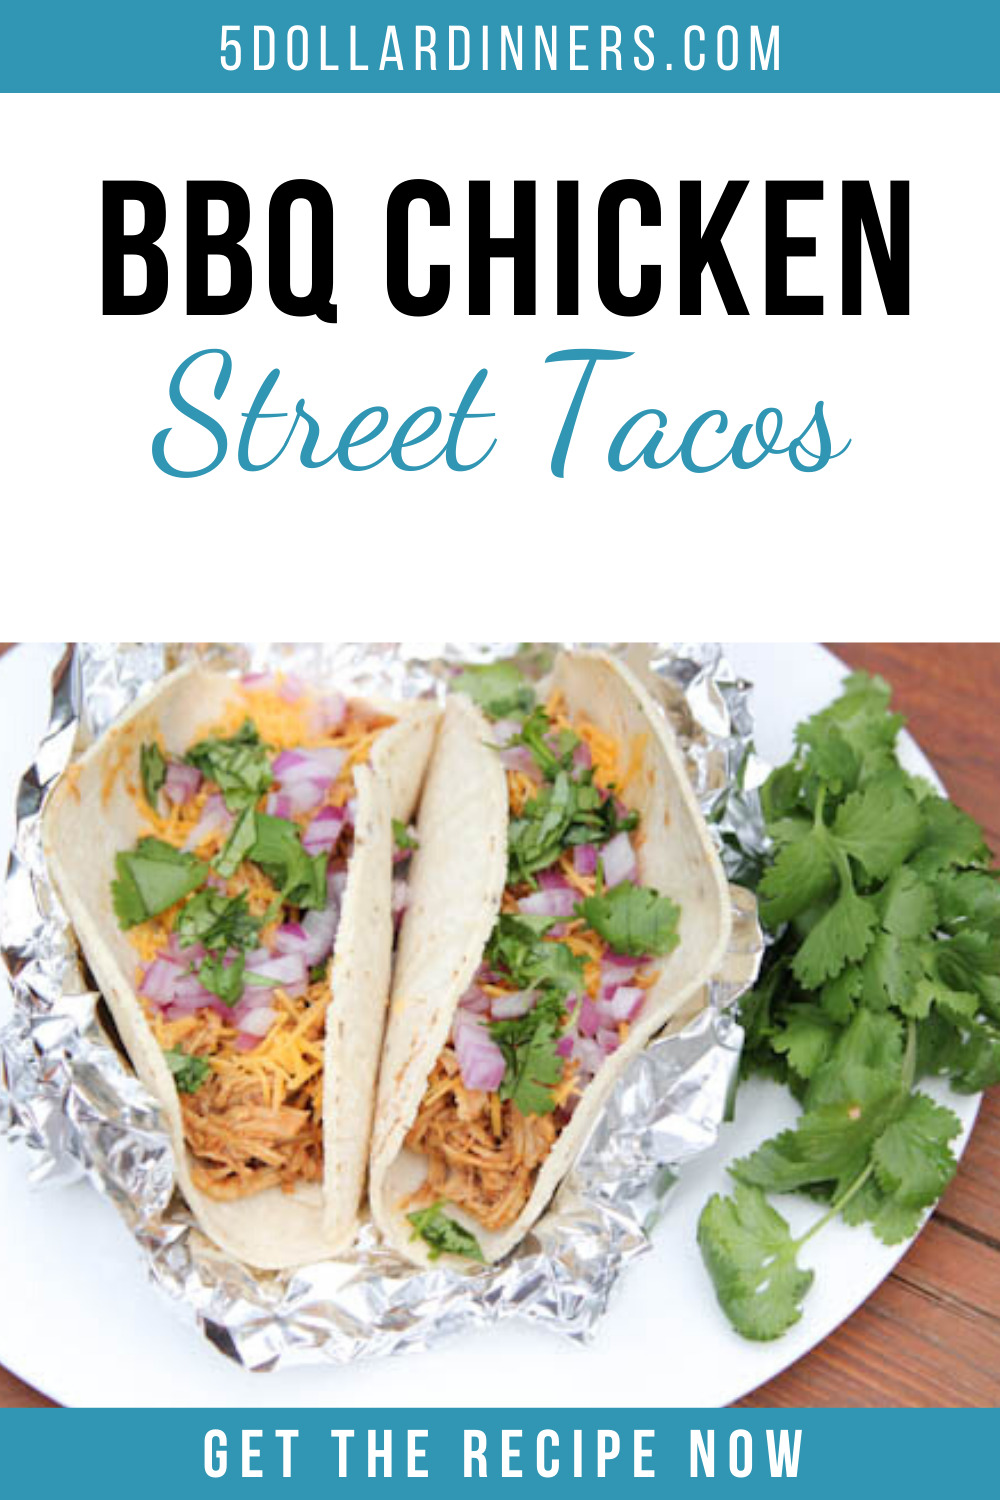 bbq chicken street tacos recipe